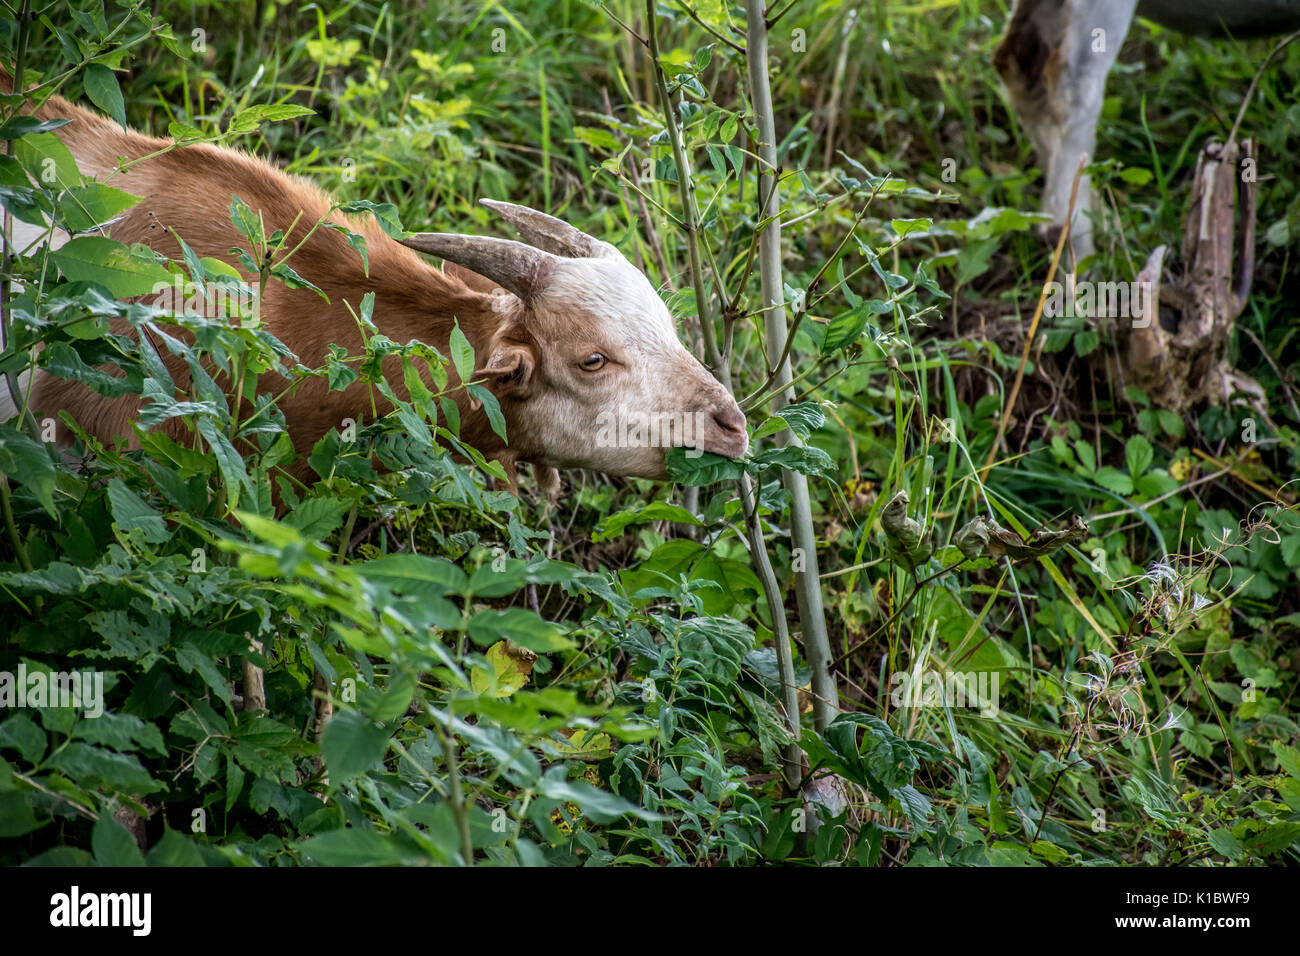 Billy Goat in Waldeck Germany - Stock Image